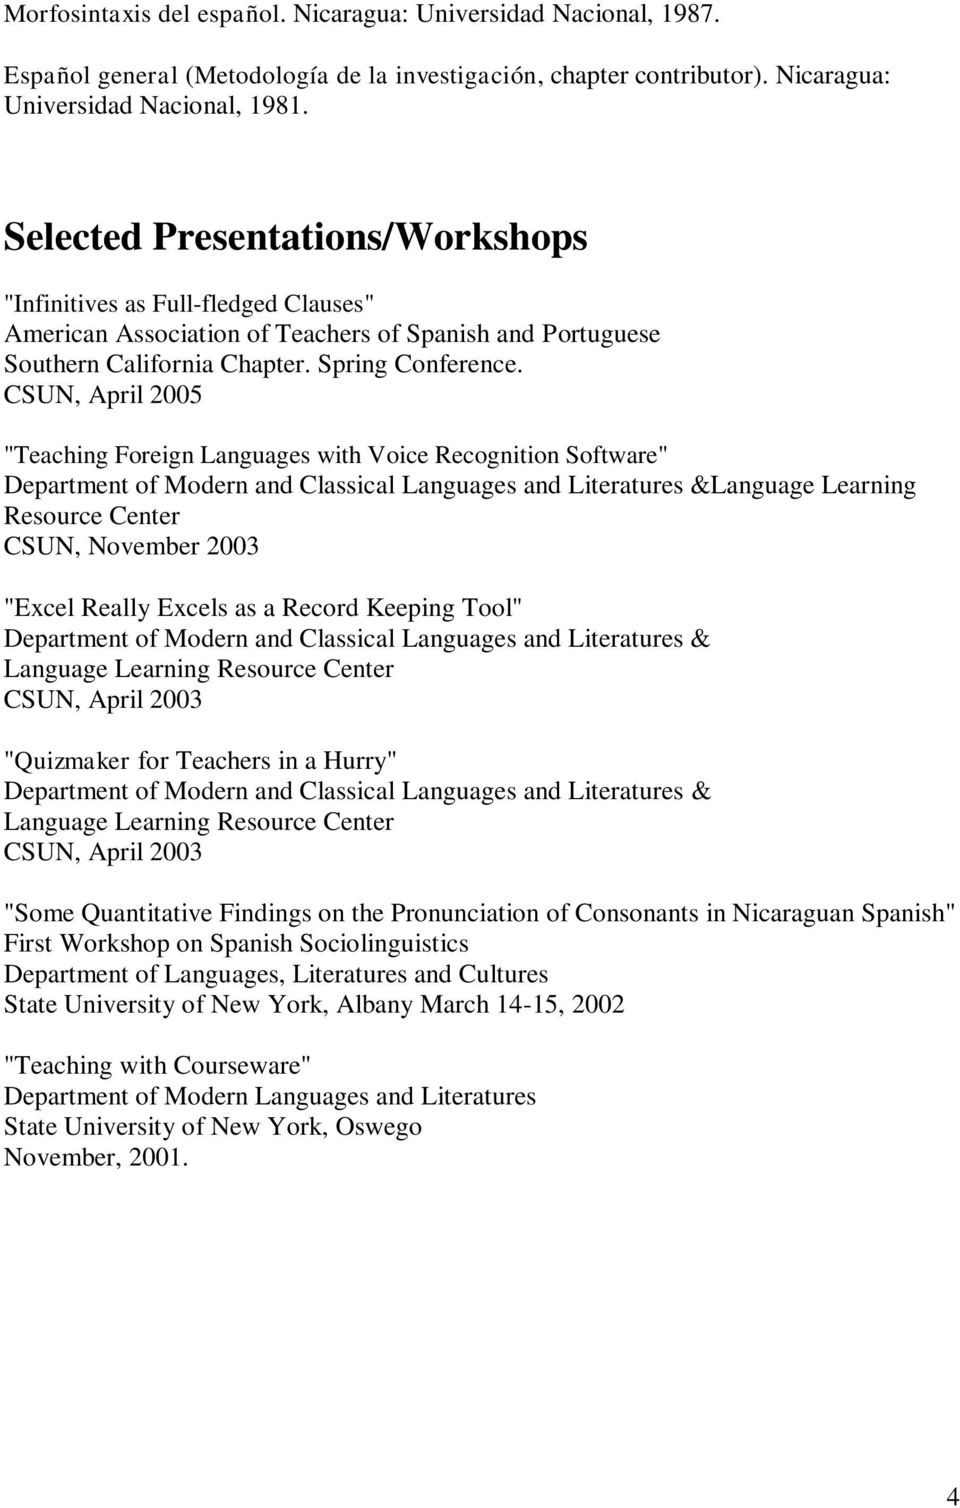 "CSUN, April 2005 ""Teaching Foreign Languages with Voice Recognition Software"" Department of Modern and Classical Languages and Literatures &Language Learning Resource Center CSUN, November 2003"